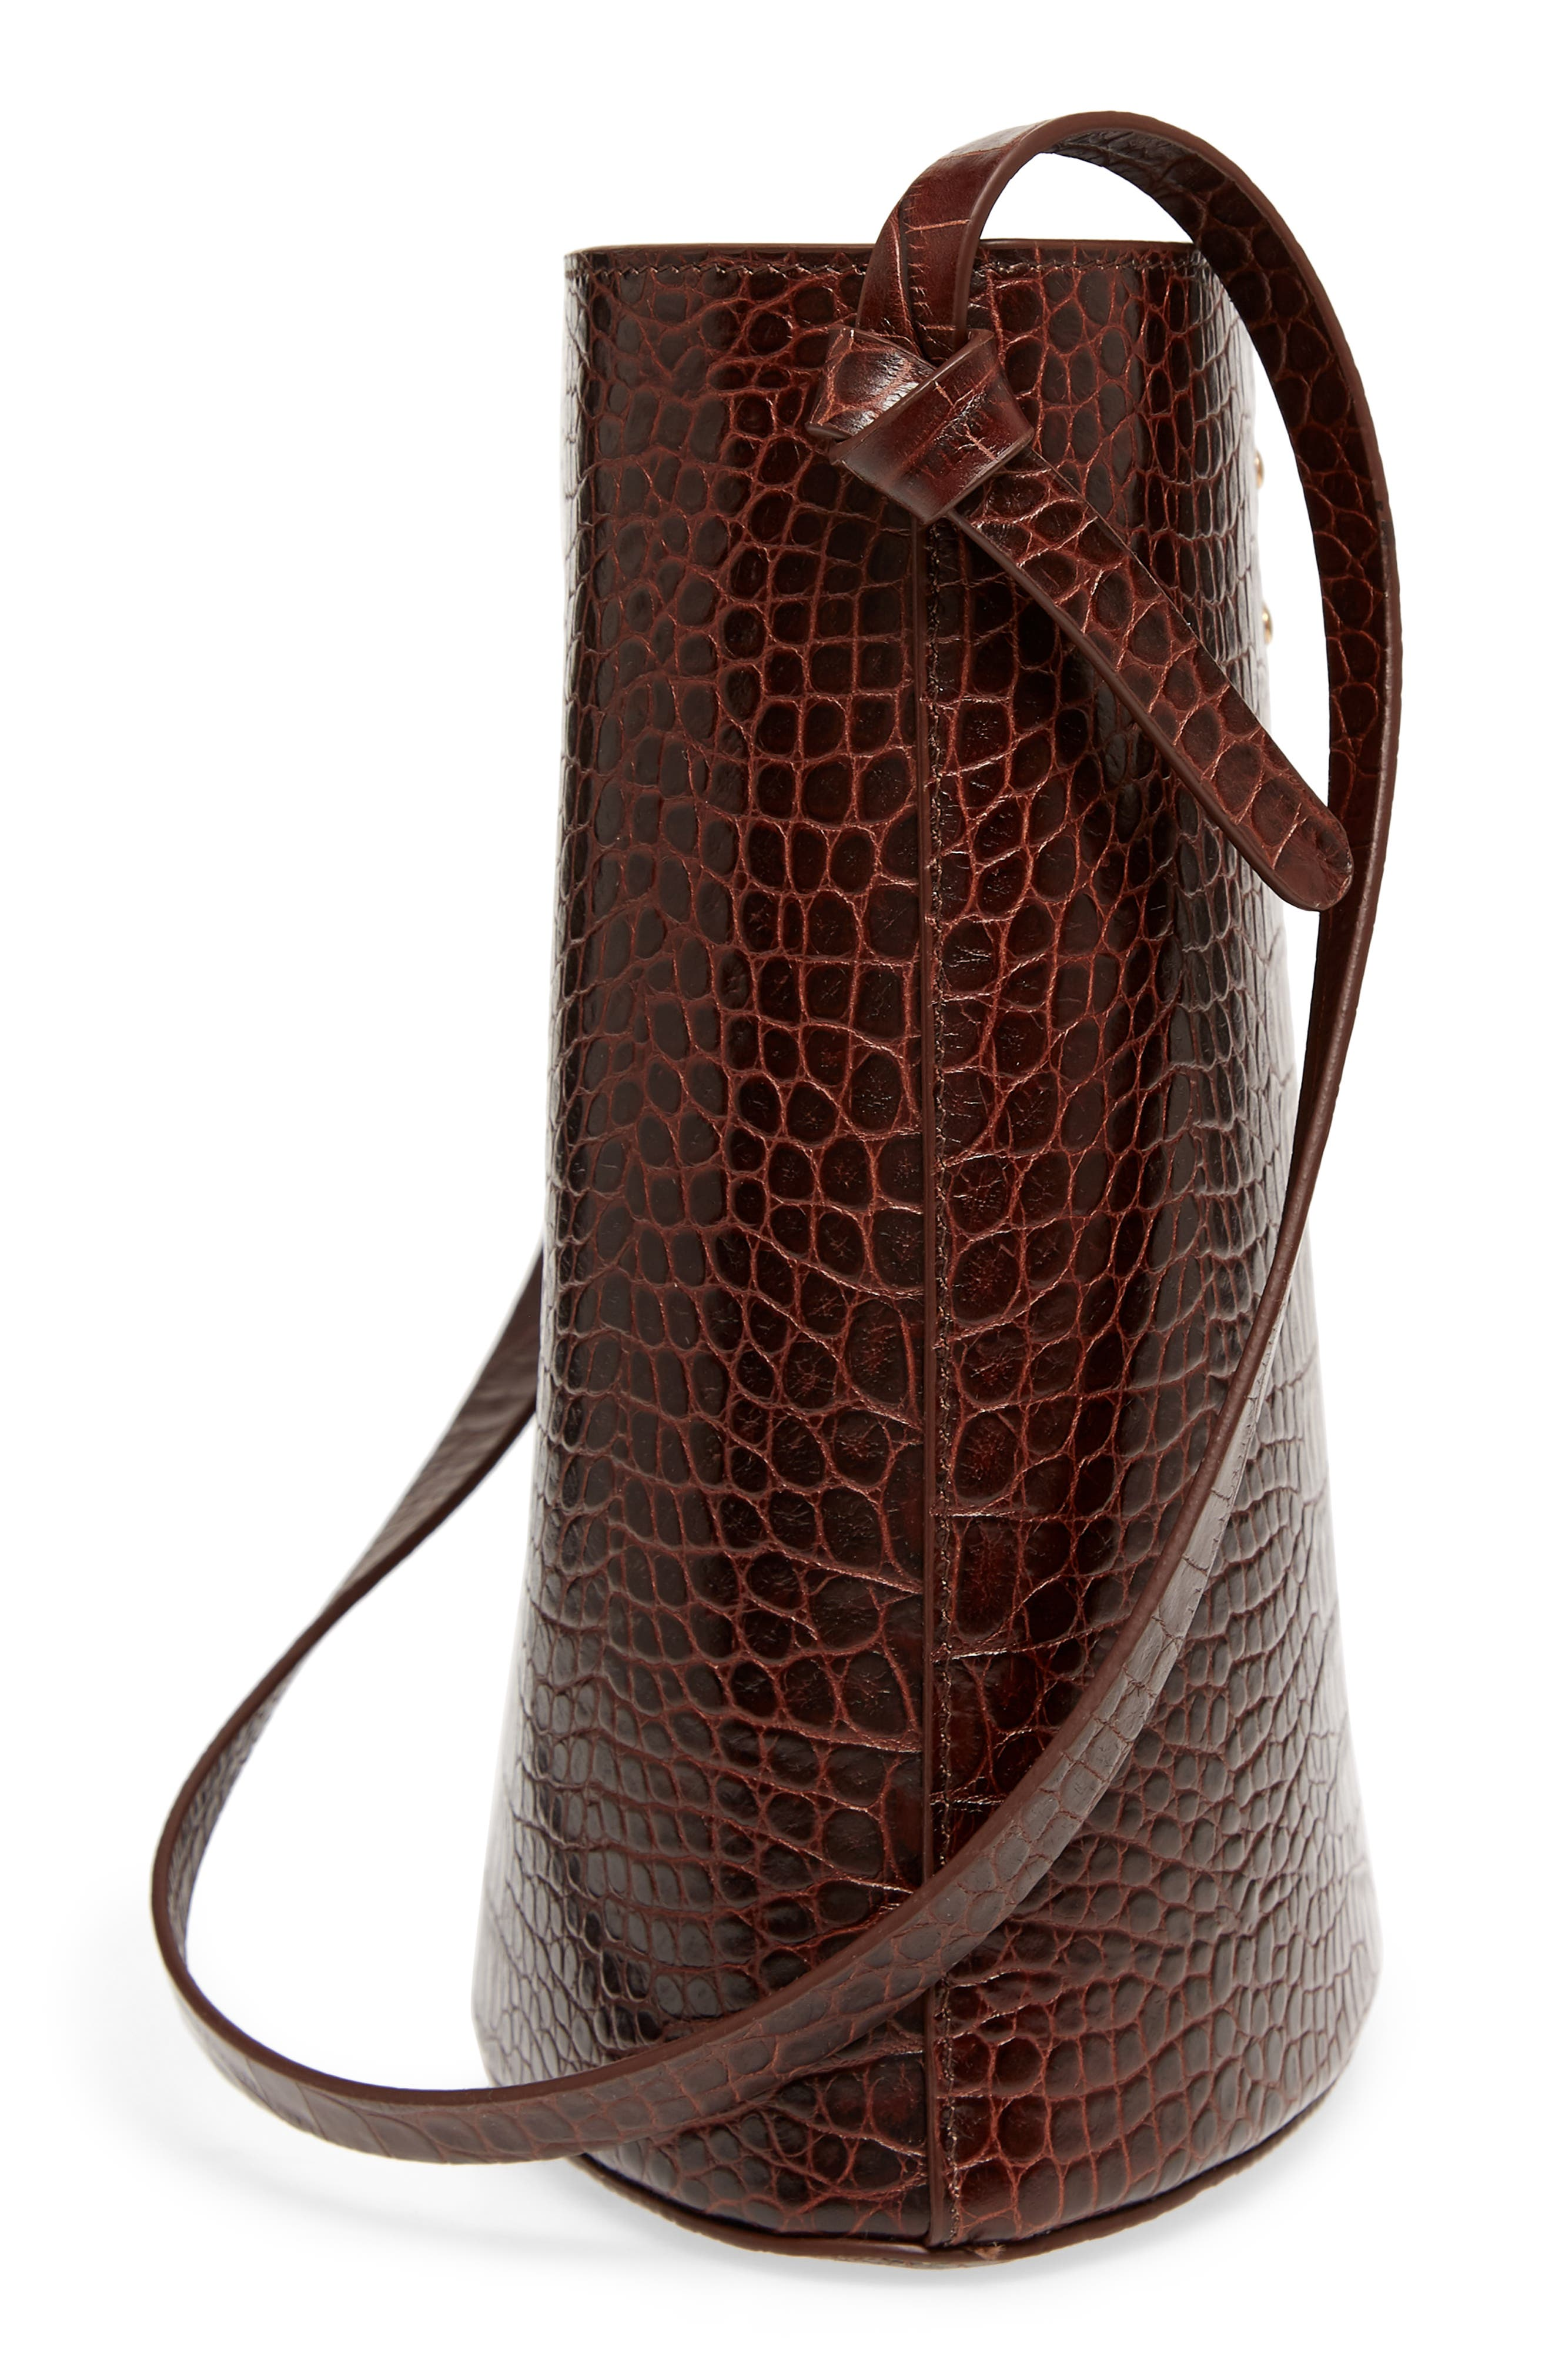 Sybil Croc Embossed Leather Tote,                             Alternate thumbnail 5, color,                             CHOCOLATE BROWN